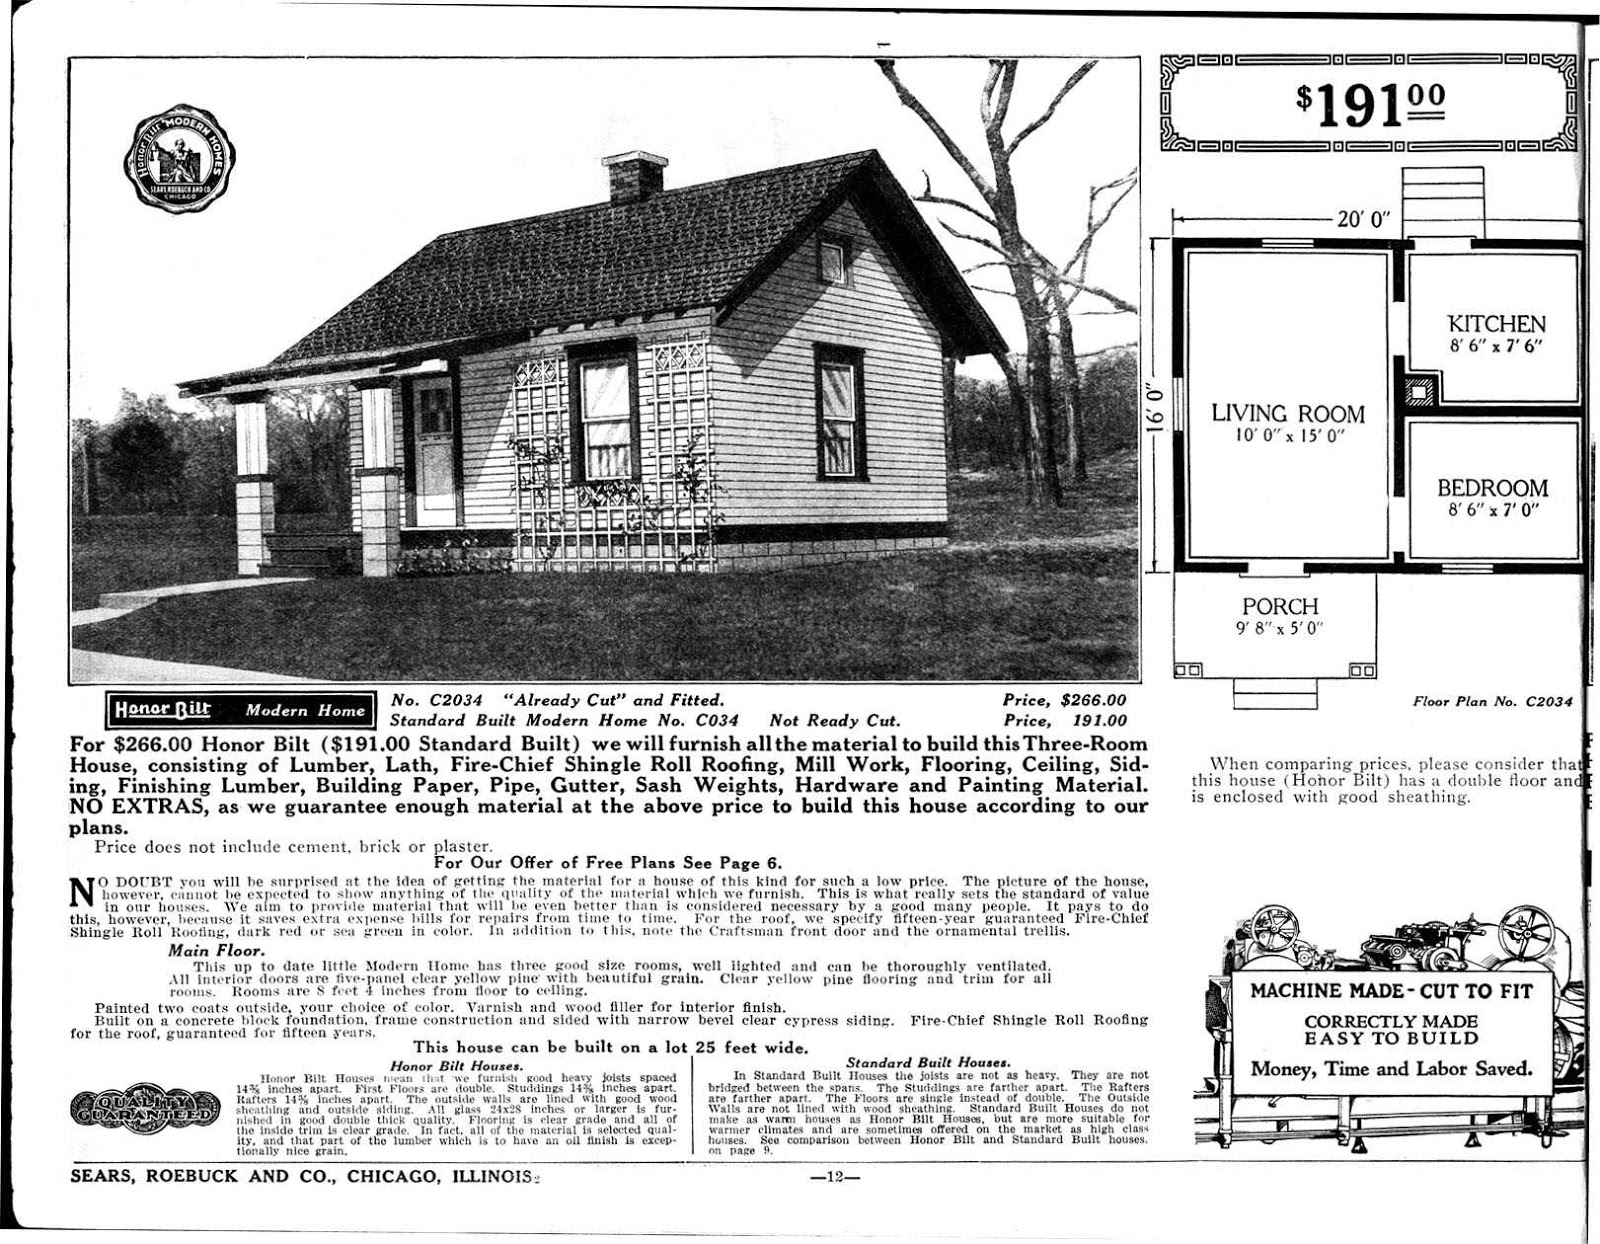 Tiny Home Designs: Sears Catalog 'Kit Homes' From The Early 20th Century